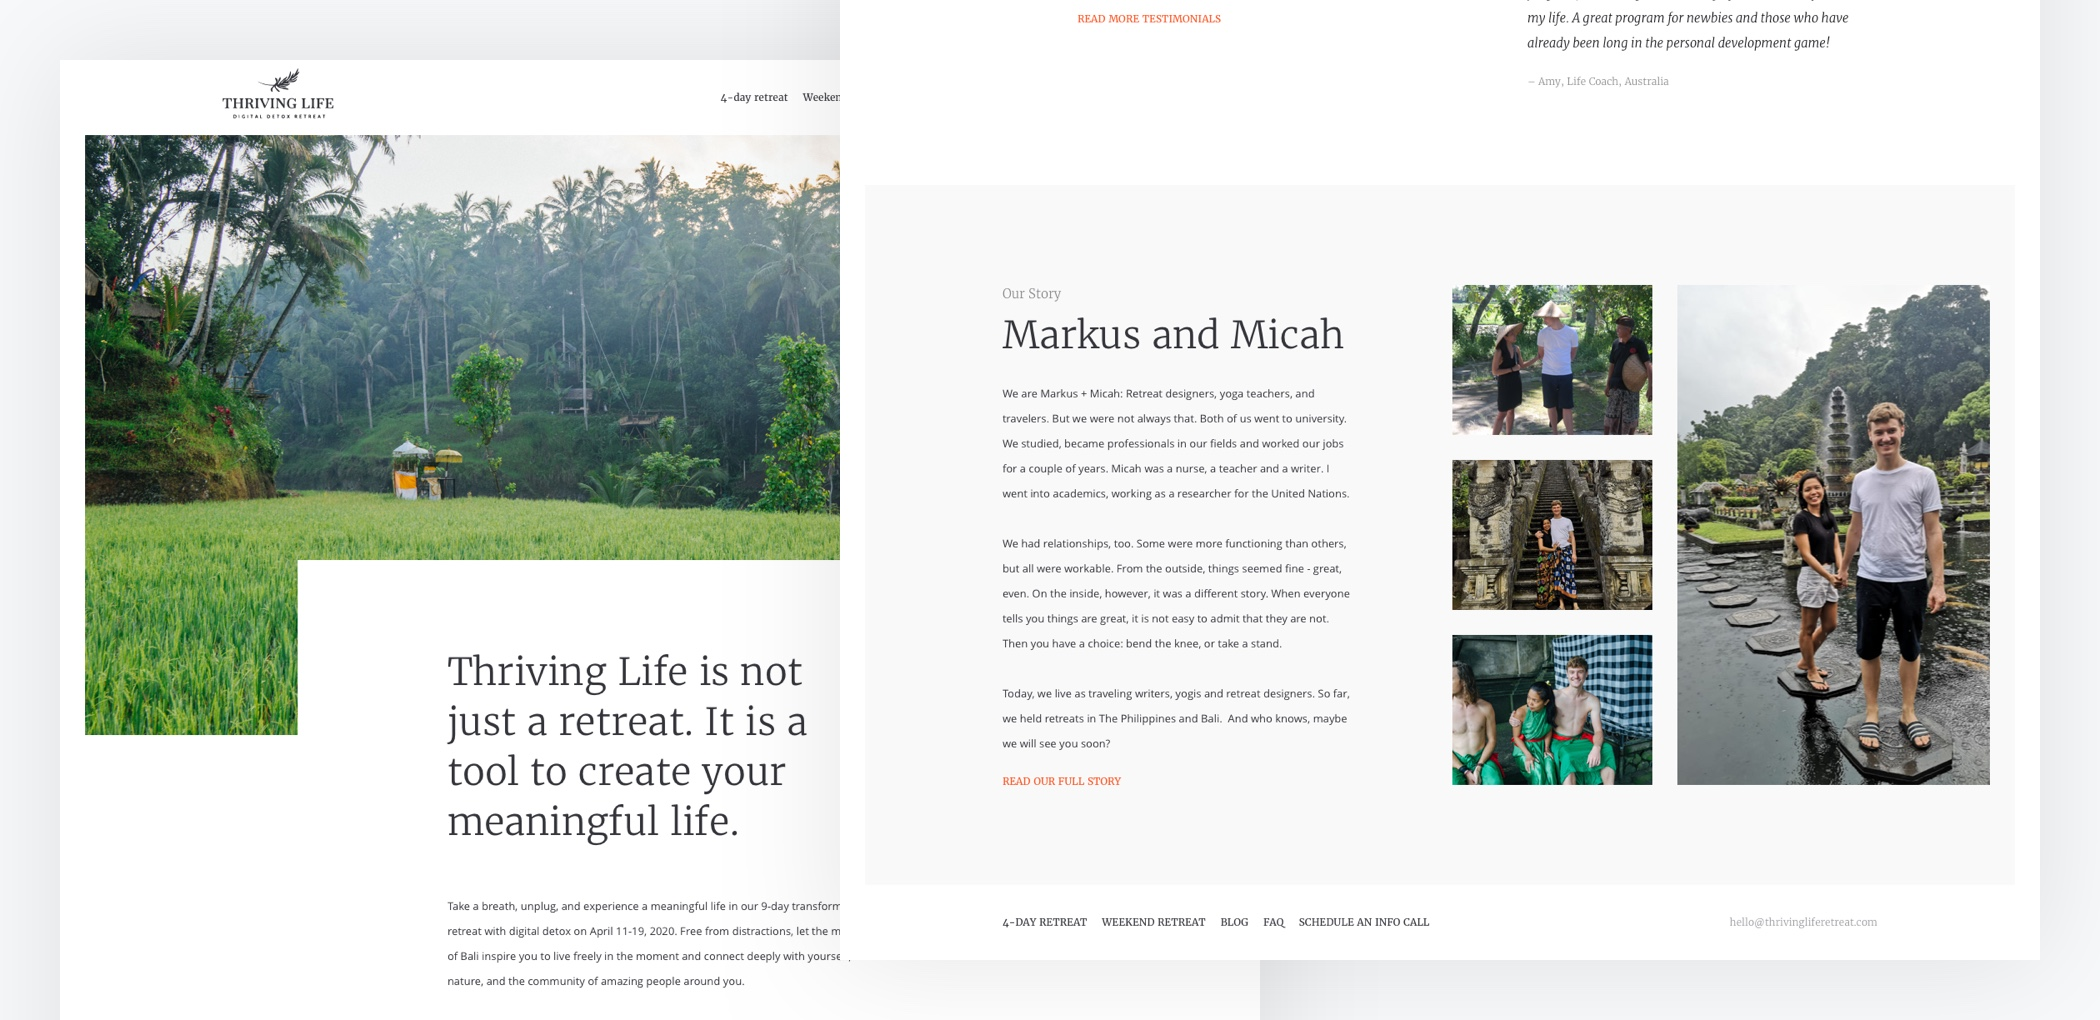 Thriving Life Digital Detox Retreat: preview of the homepage designs